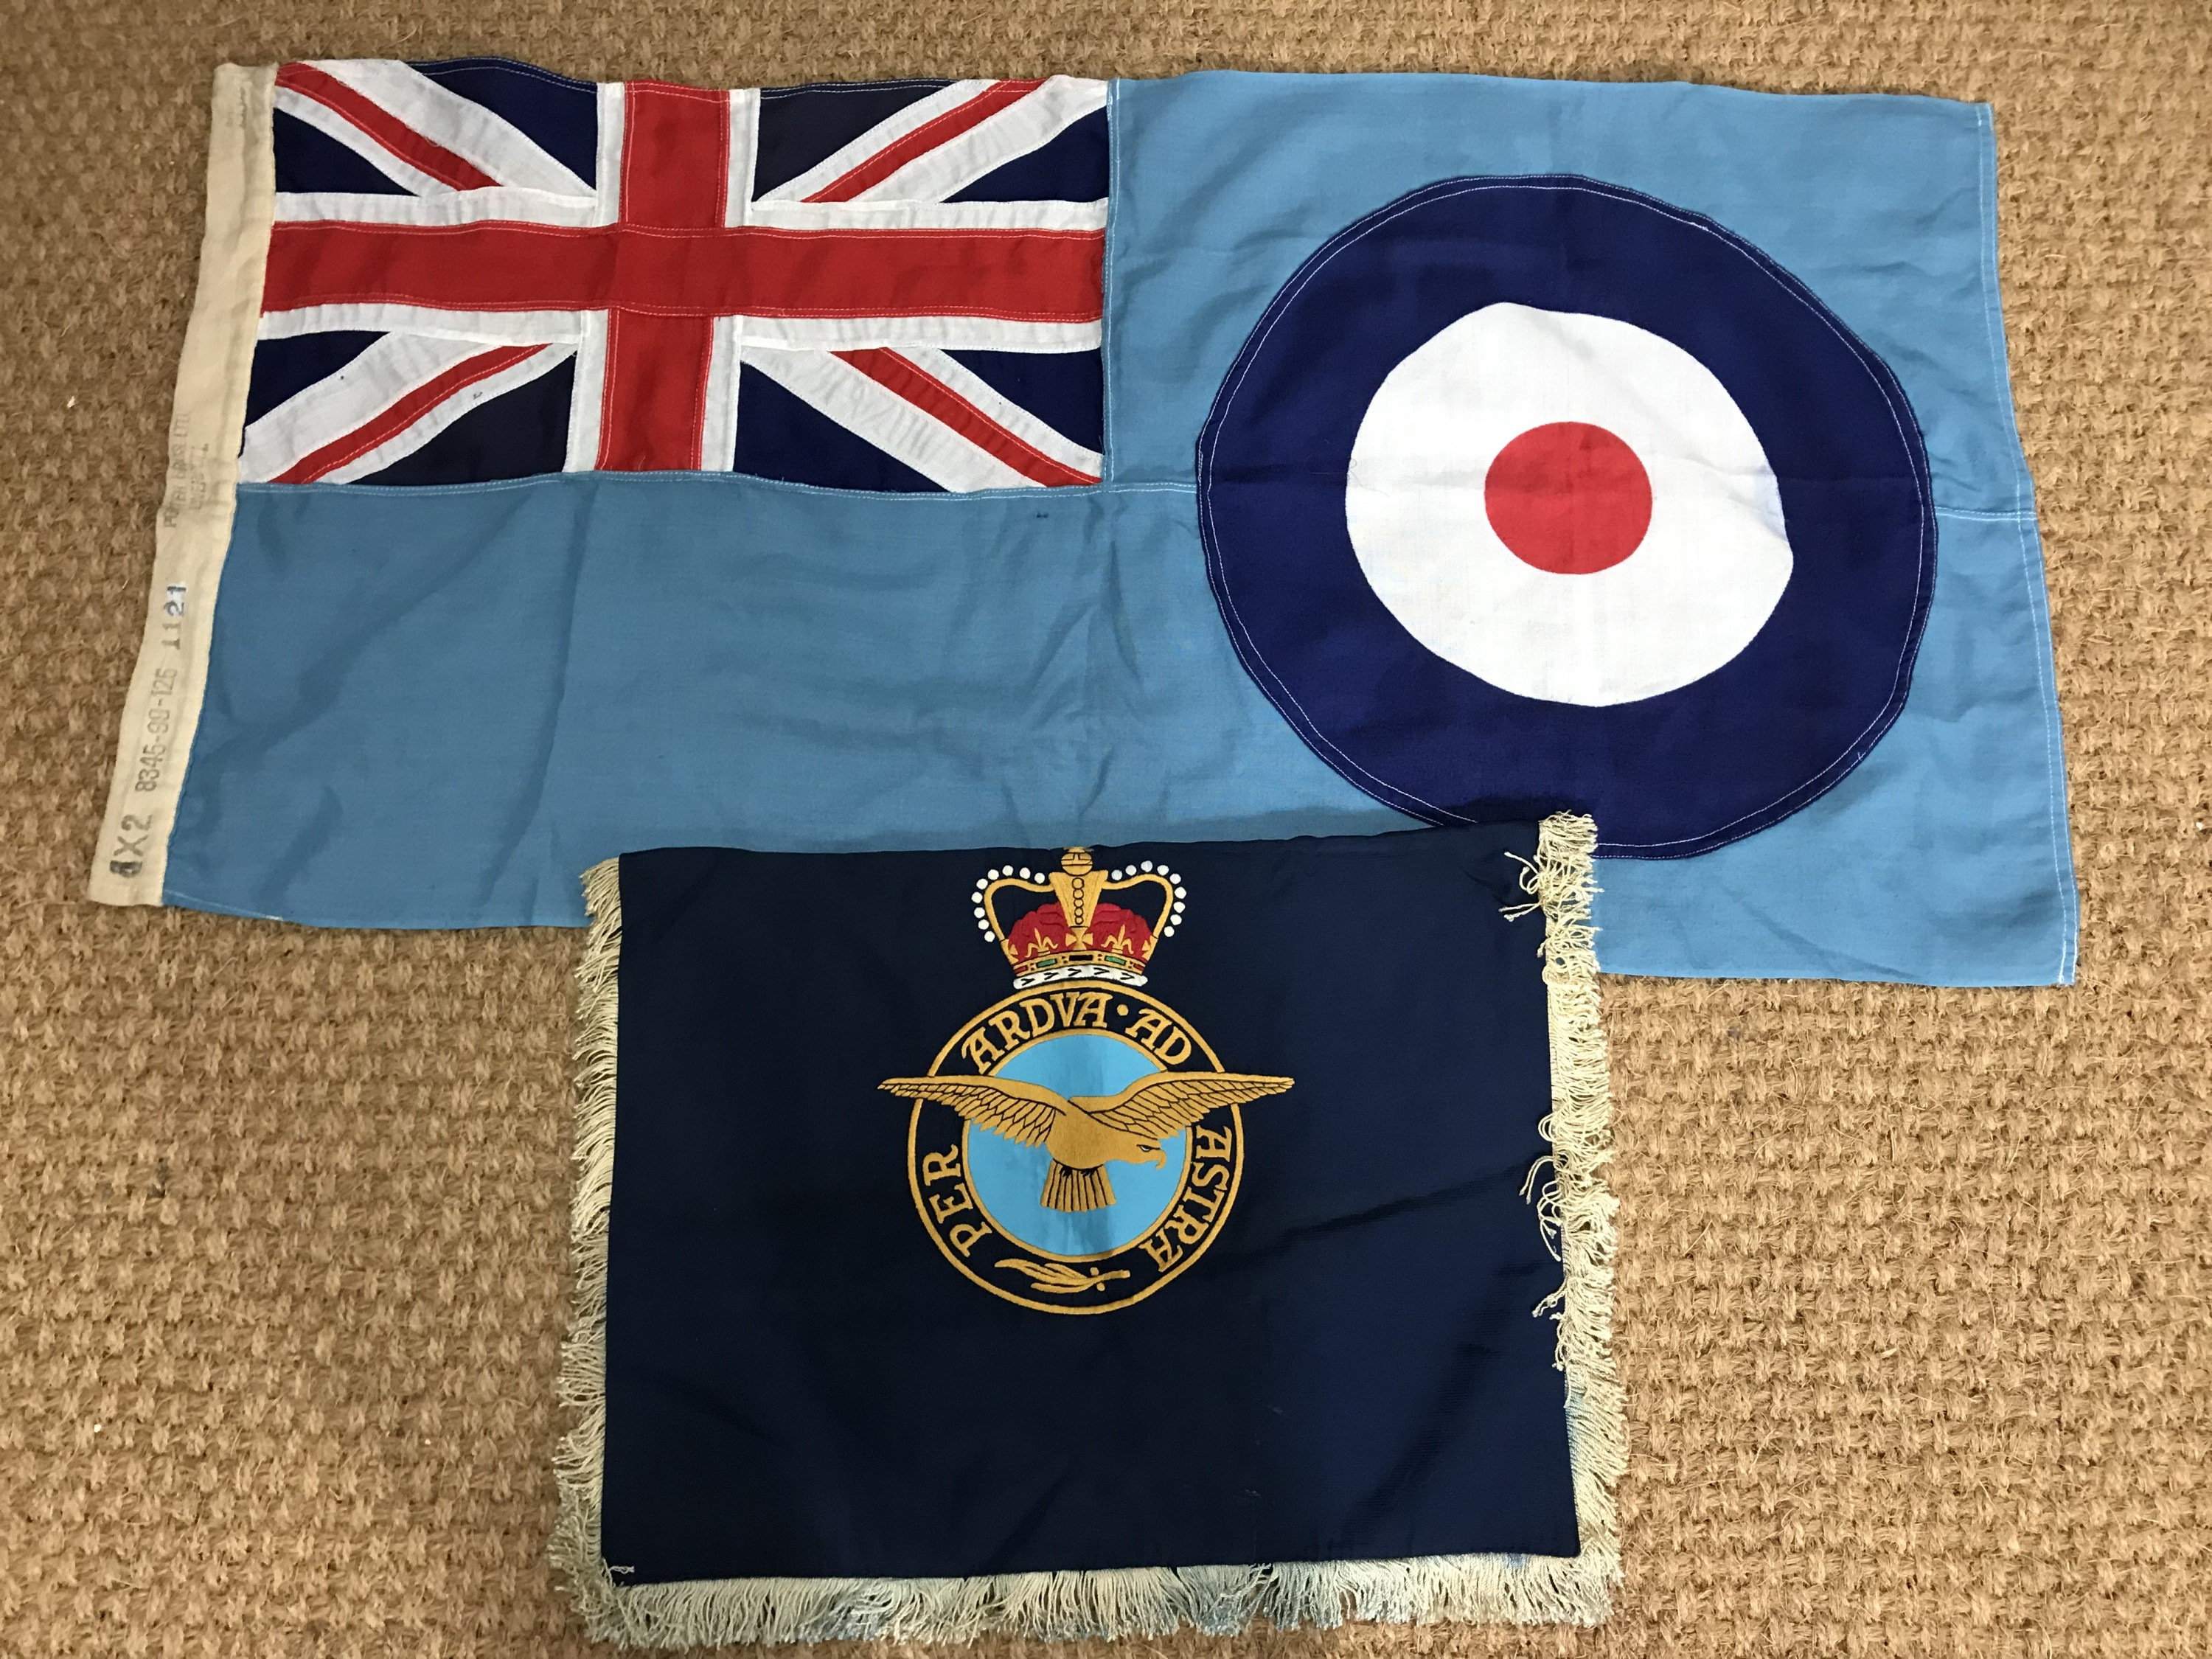 Lot 59 - A post 1952 RAF banner together with an RAF ensign / flag